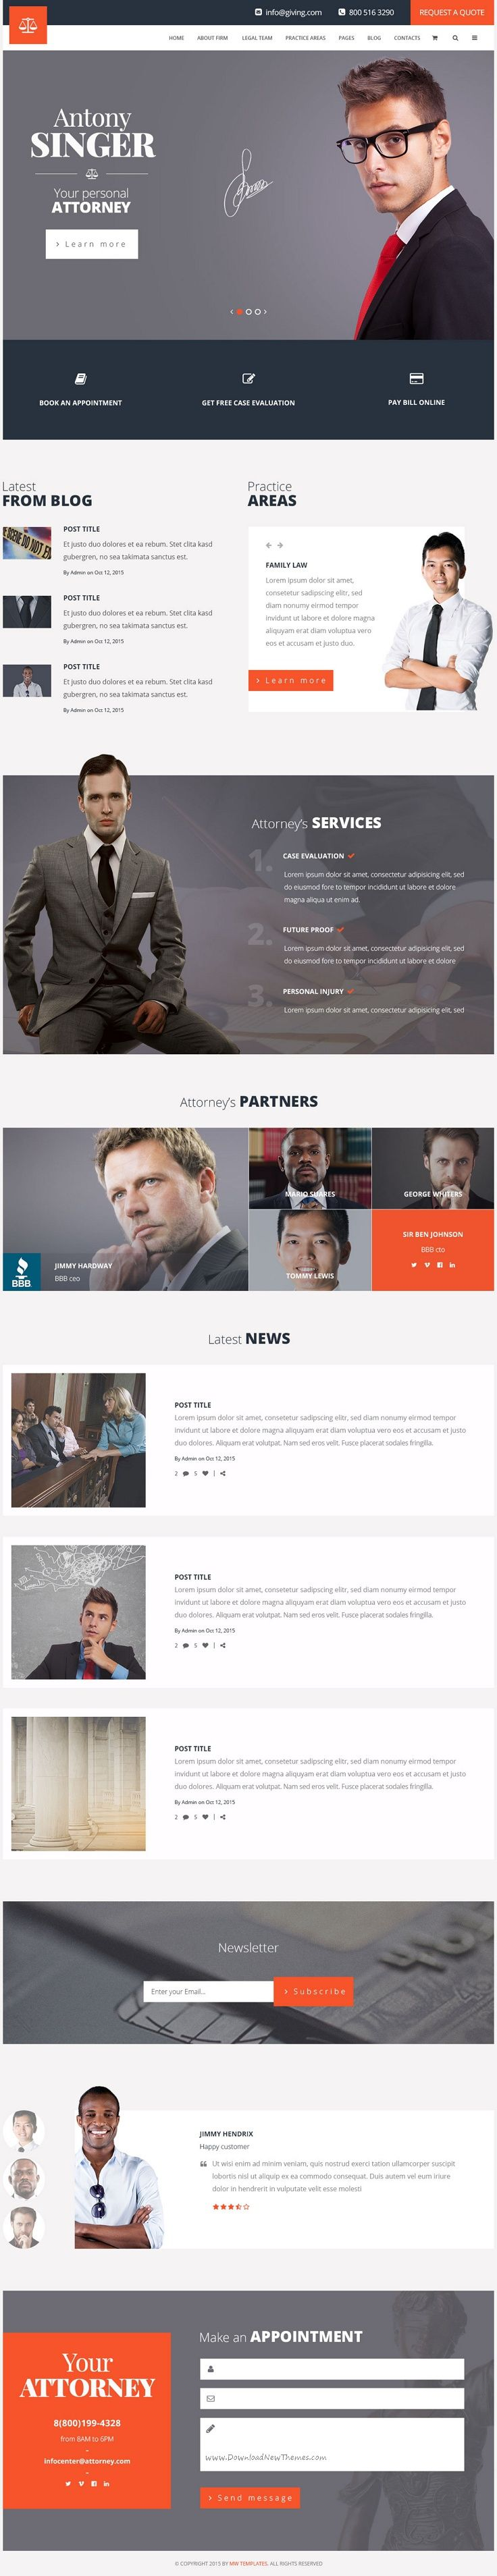 Attorneys is a premium PSD template for